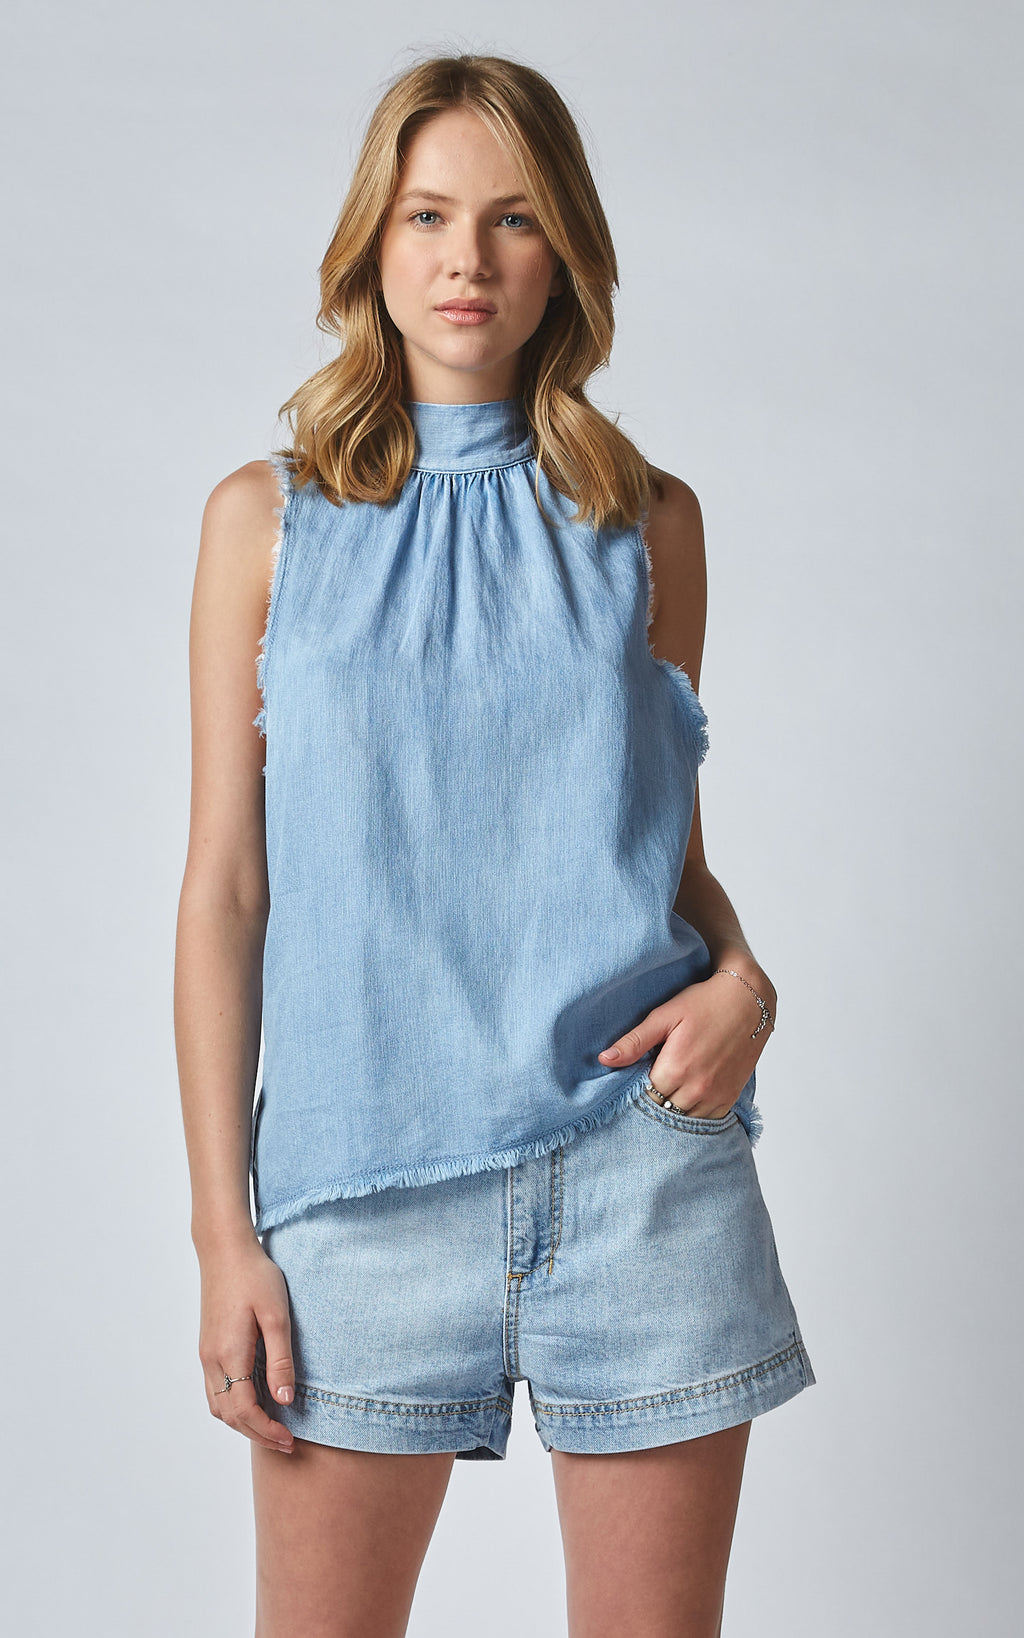 OLIANA LINEN DENIM NECK TIE TANK